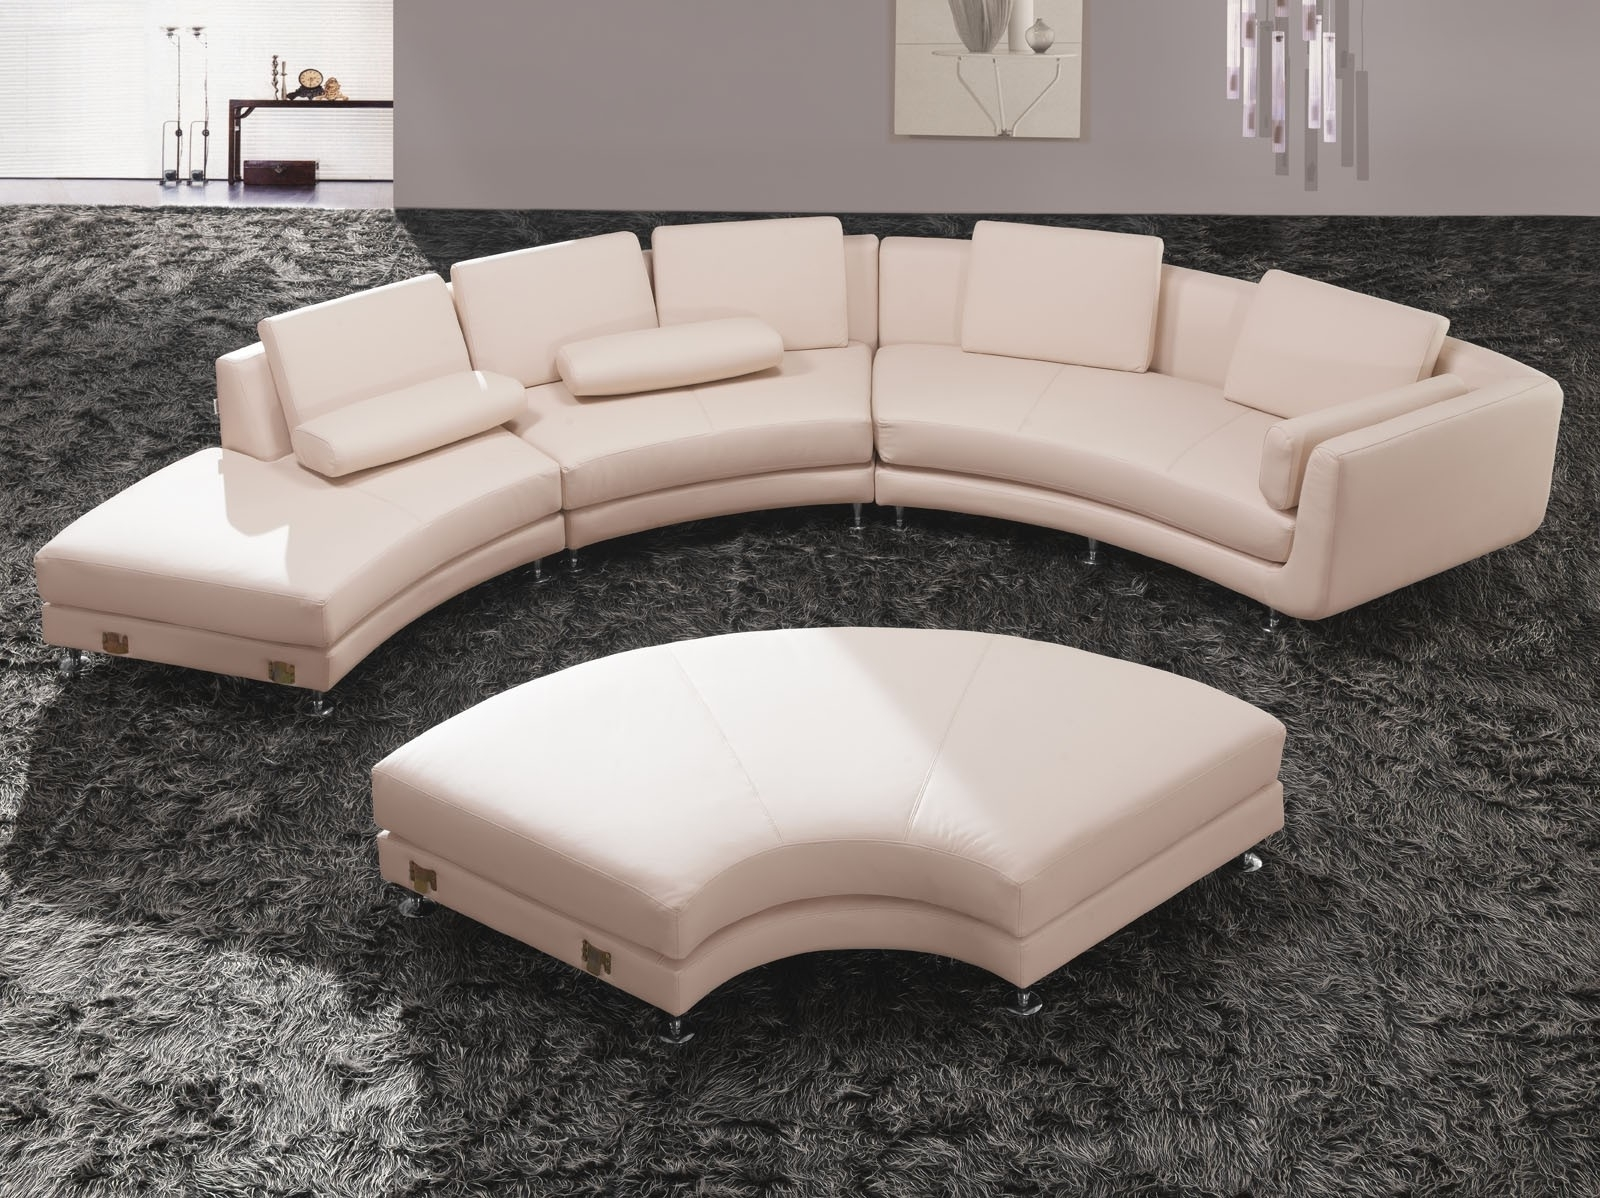 Circular Sectional Sofas Throughout Current Sofa : Glamorous Round Sectional Sofa Bed Curved Leather Tufted (View 2 of 20)